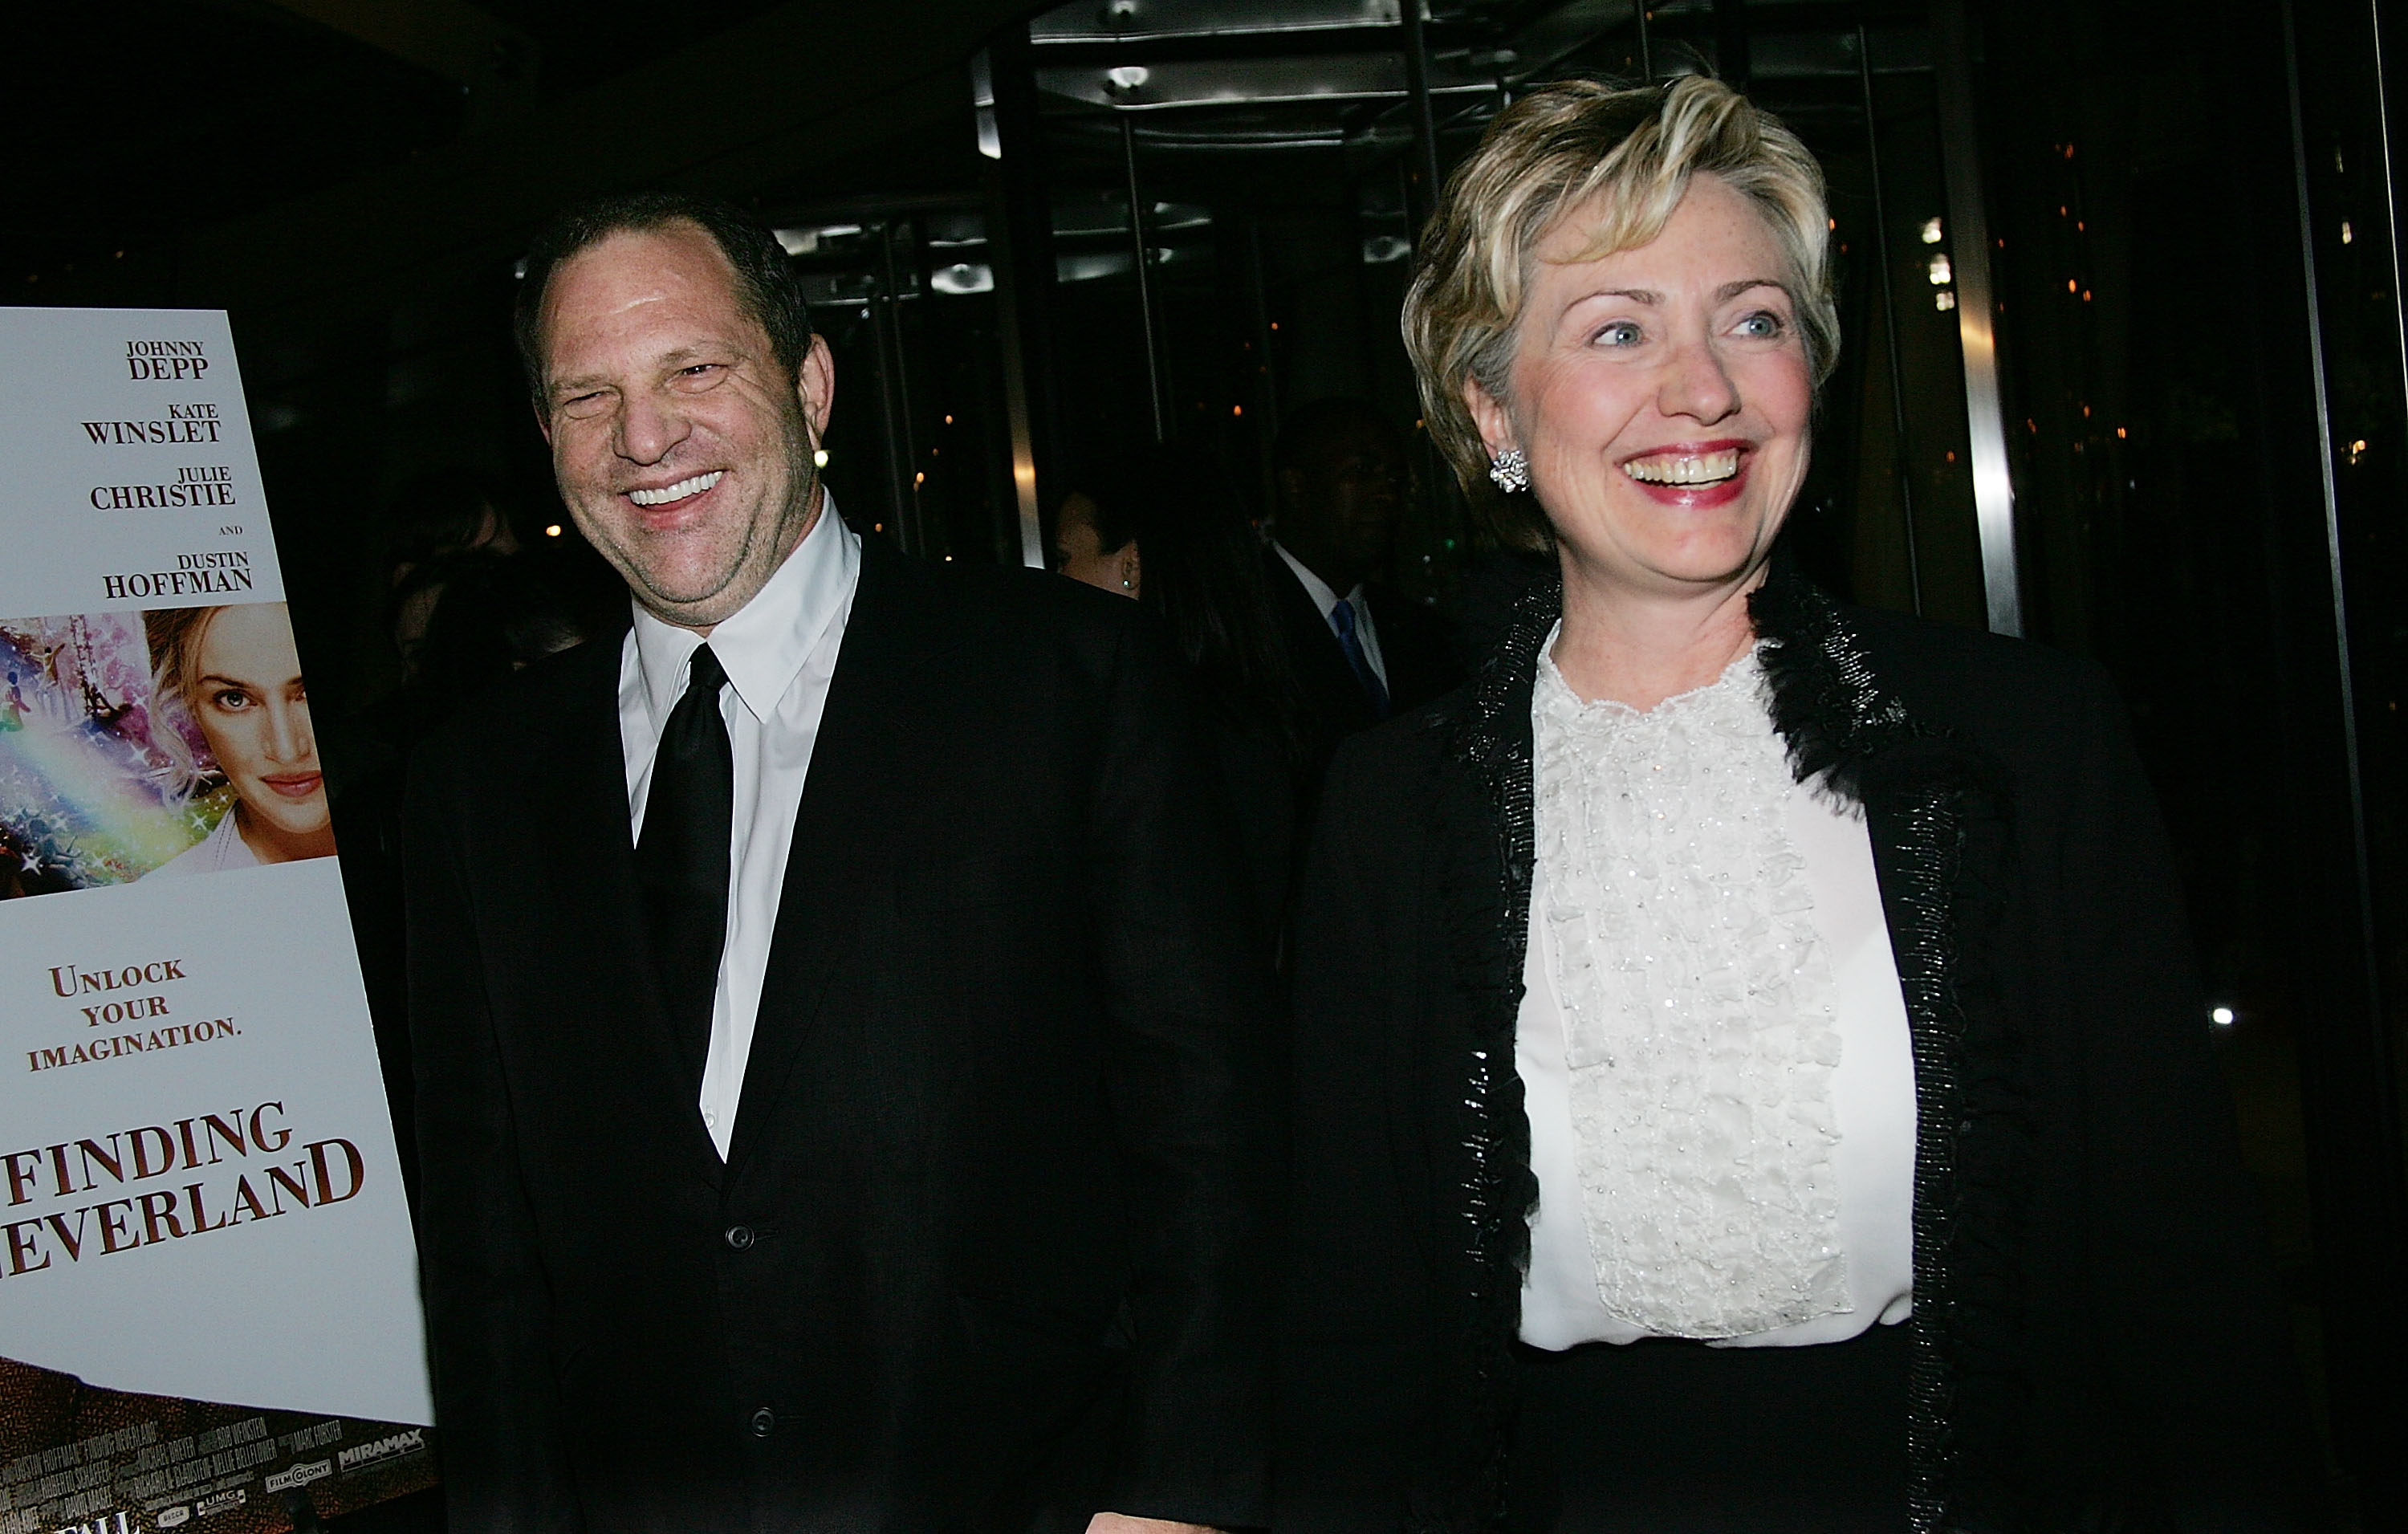 """NEW YORK - OCTOBER 25: Producer Harvey Weinstein and Senator Hillary Clinton (D-NY) attend the """"Finding Neverland"""" premiere at the Brooklyn Museum October 25, 2004 in New York City. (Photo by Evan Agostini/Getty Images)"""